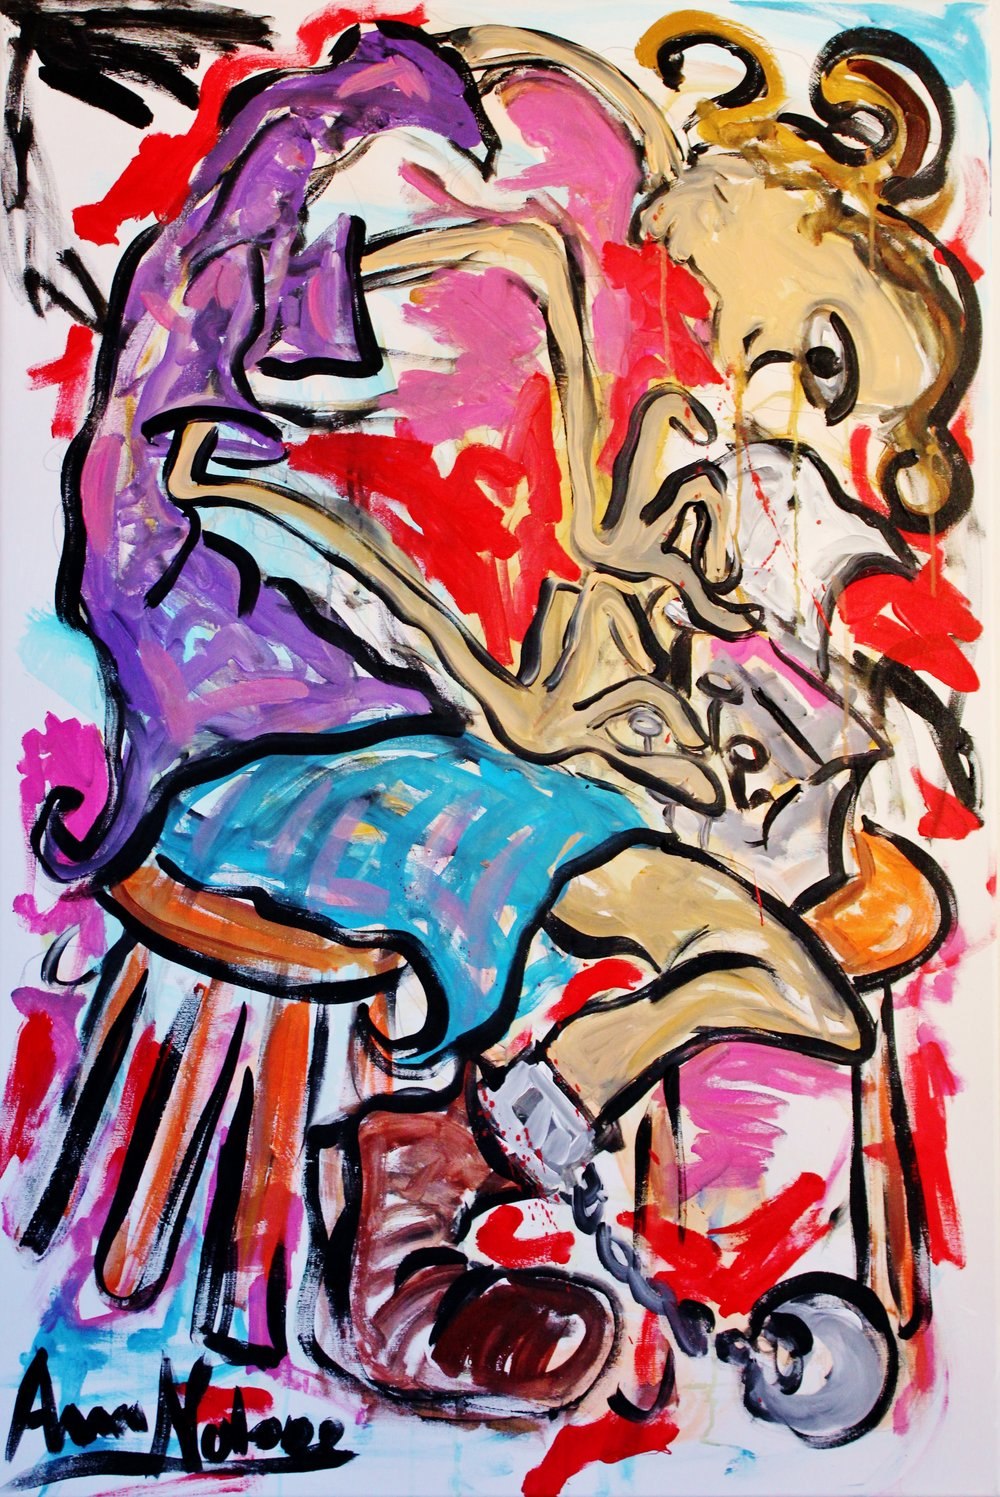 the torture of creation Acrylic on Canvas 80x120cm.JPG